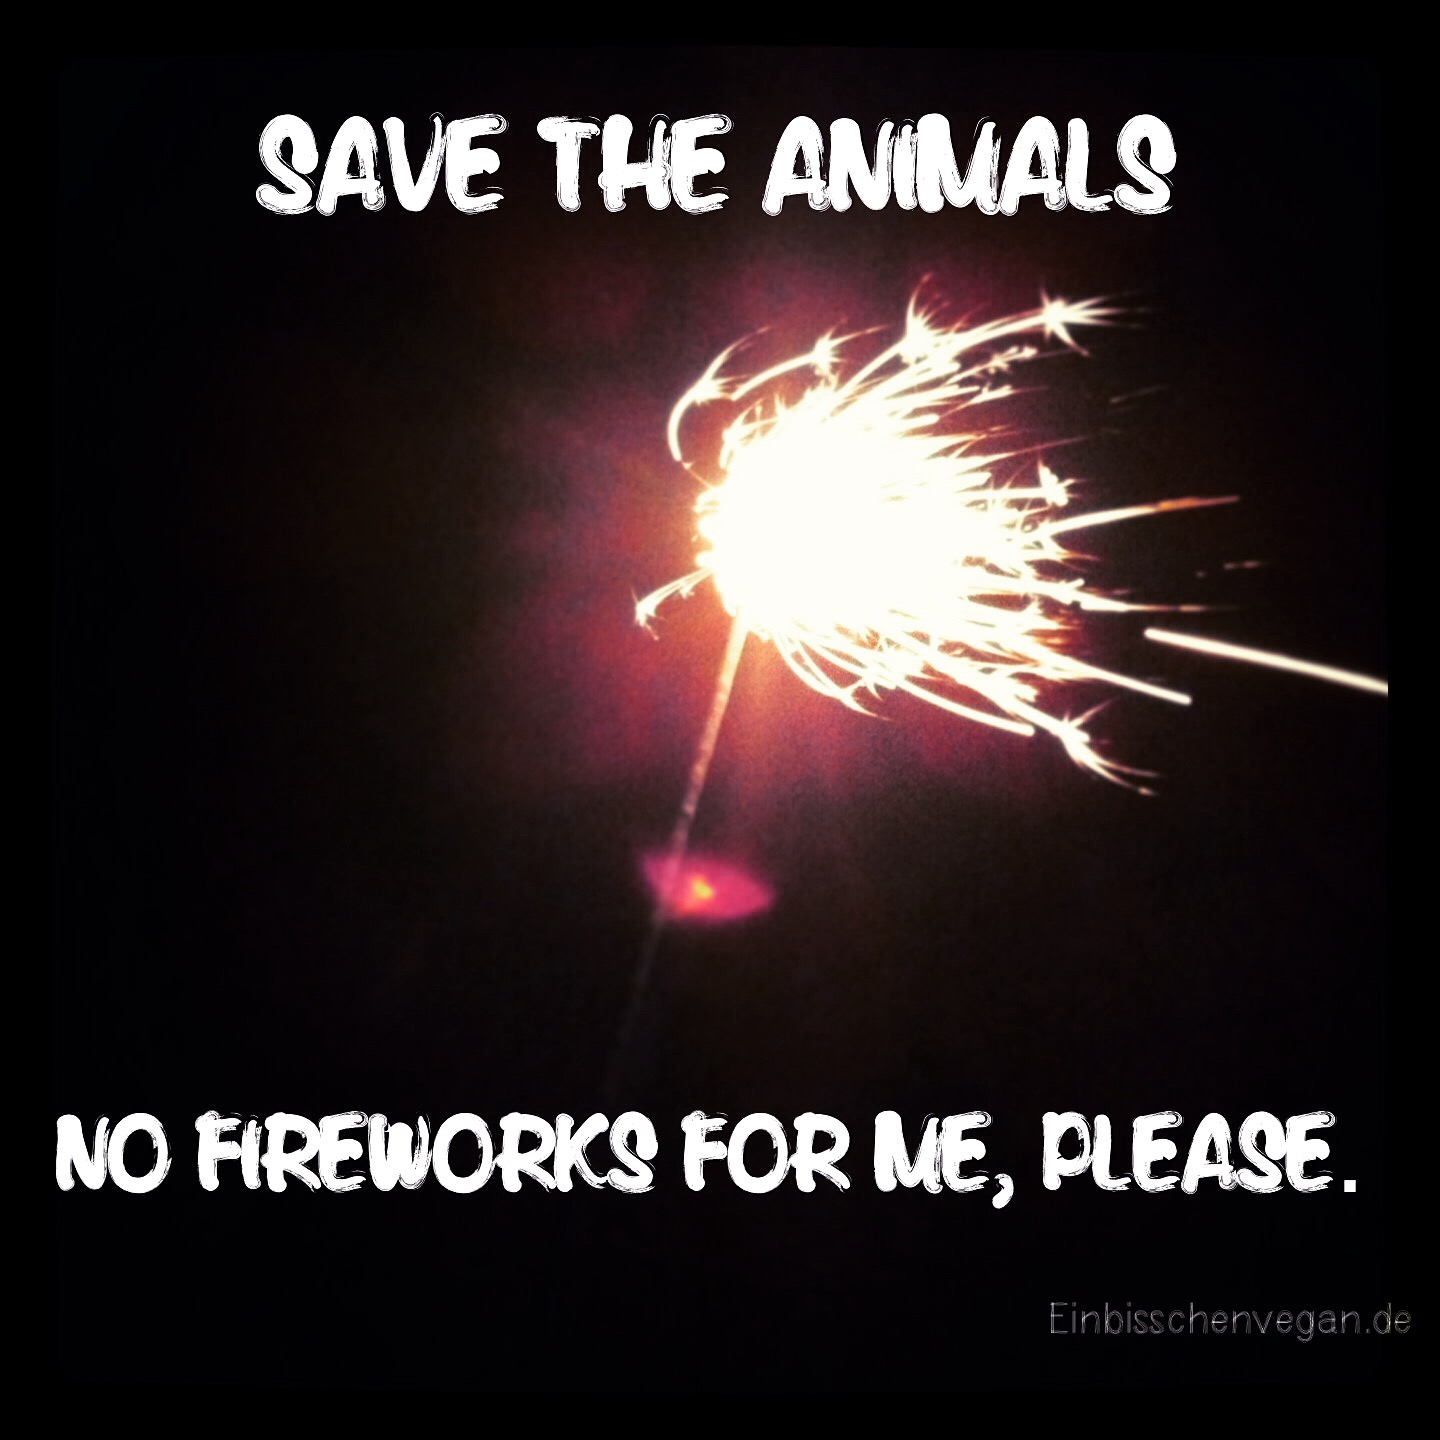 No fireworks vegan animals